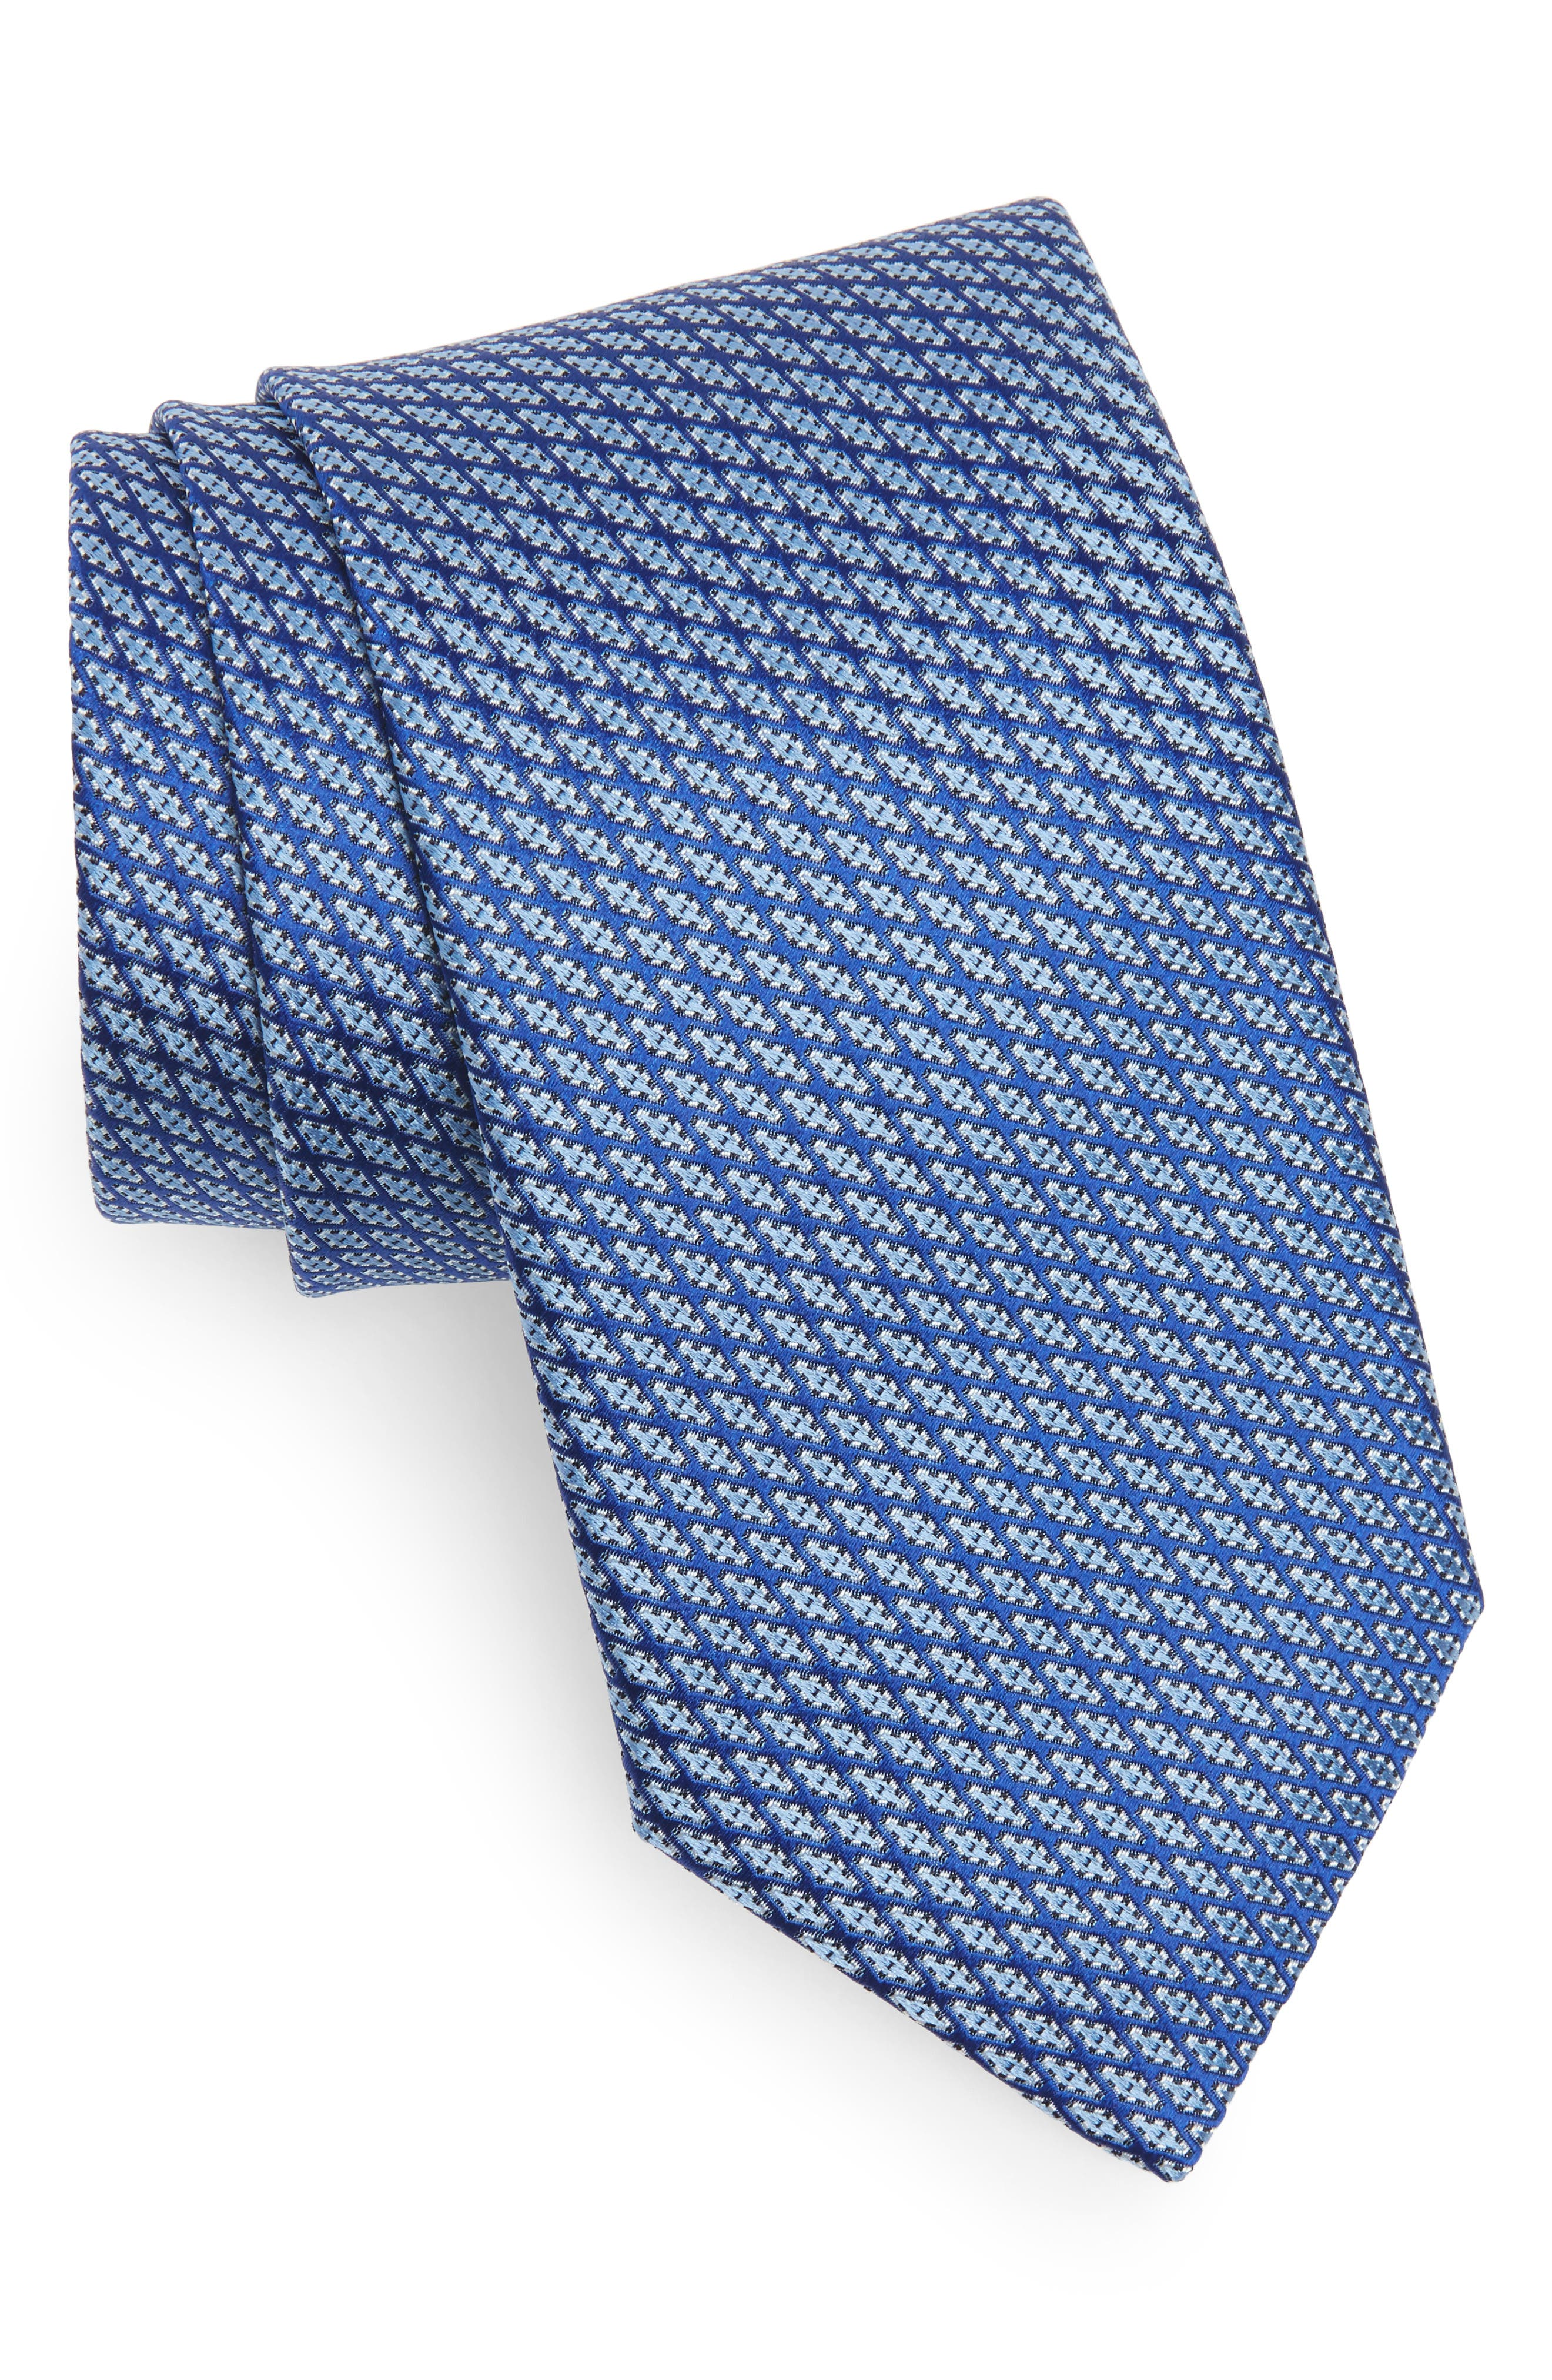 Alternate Image 1 Selected - Canali Neat Silk Tie